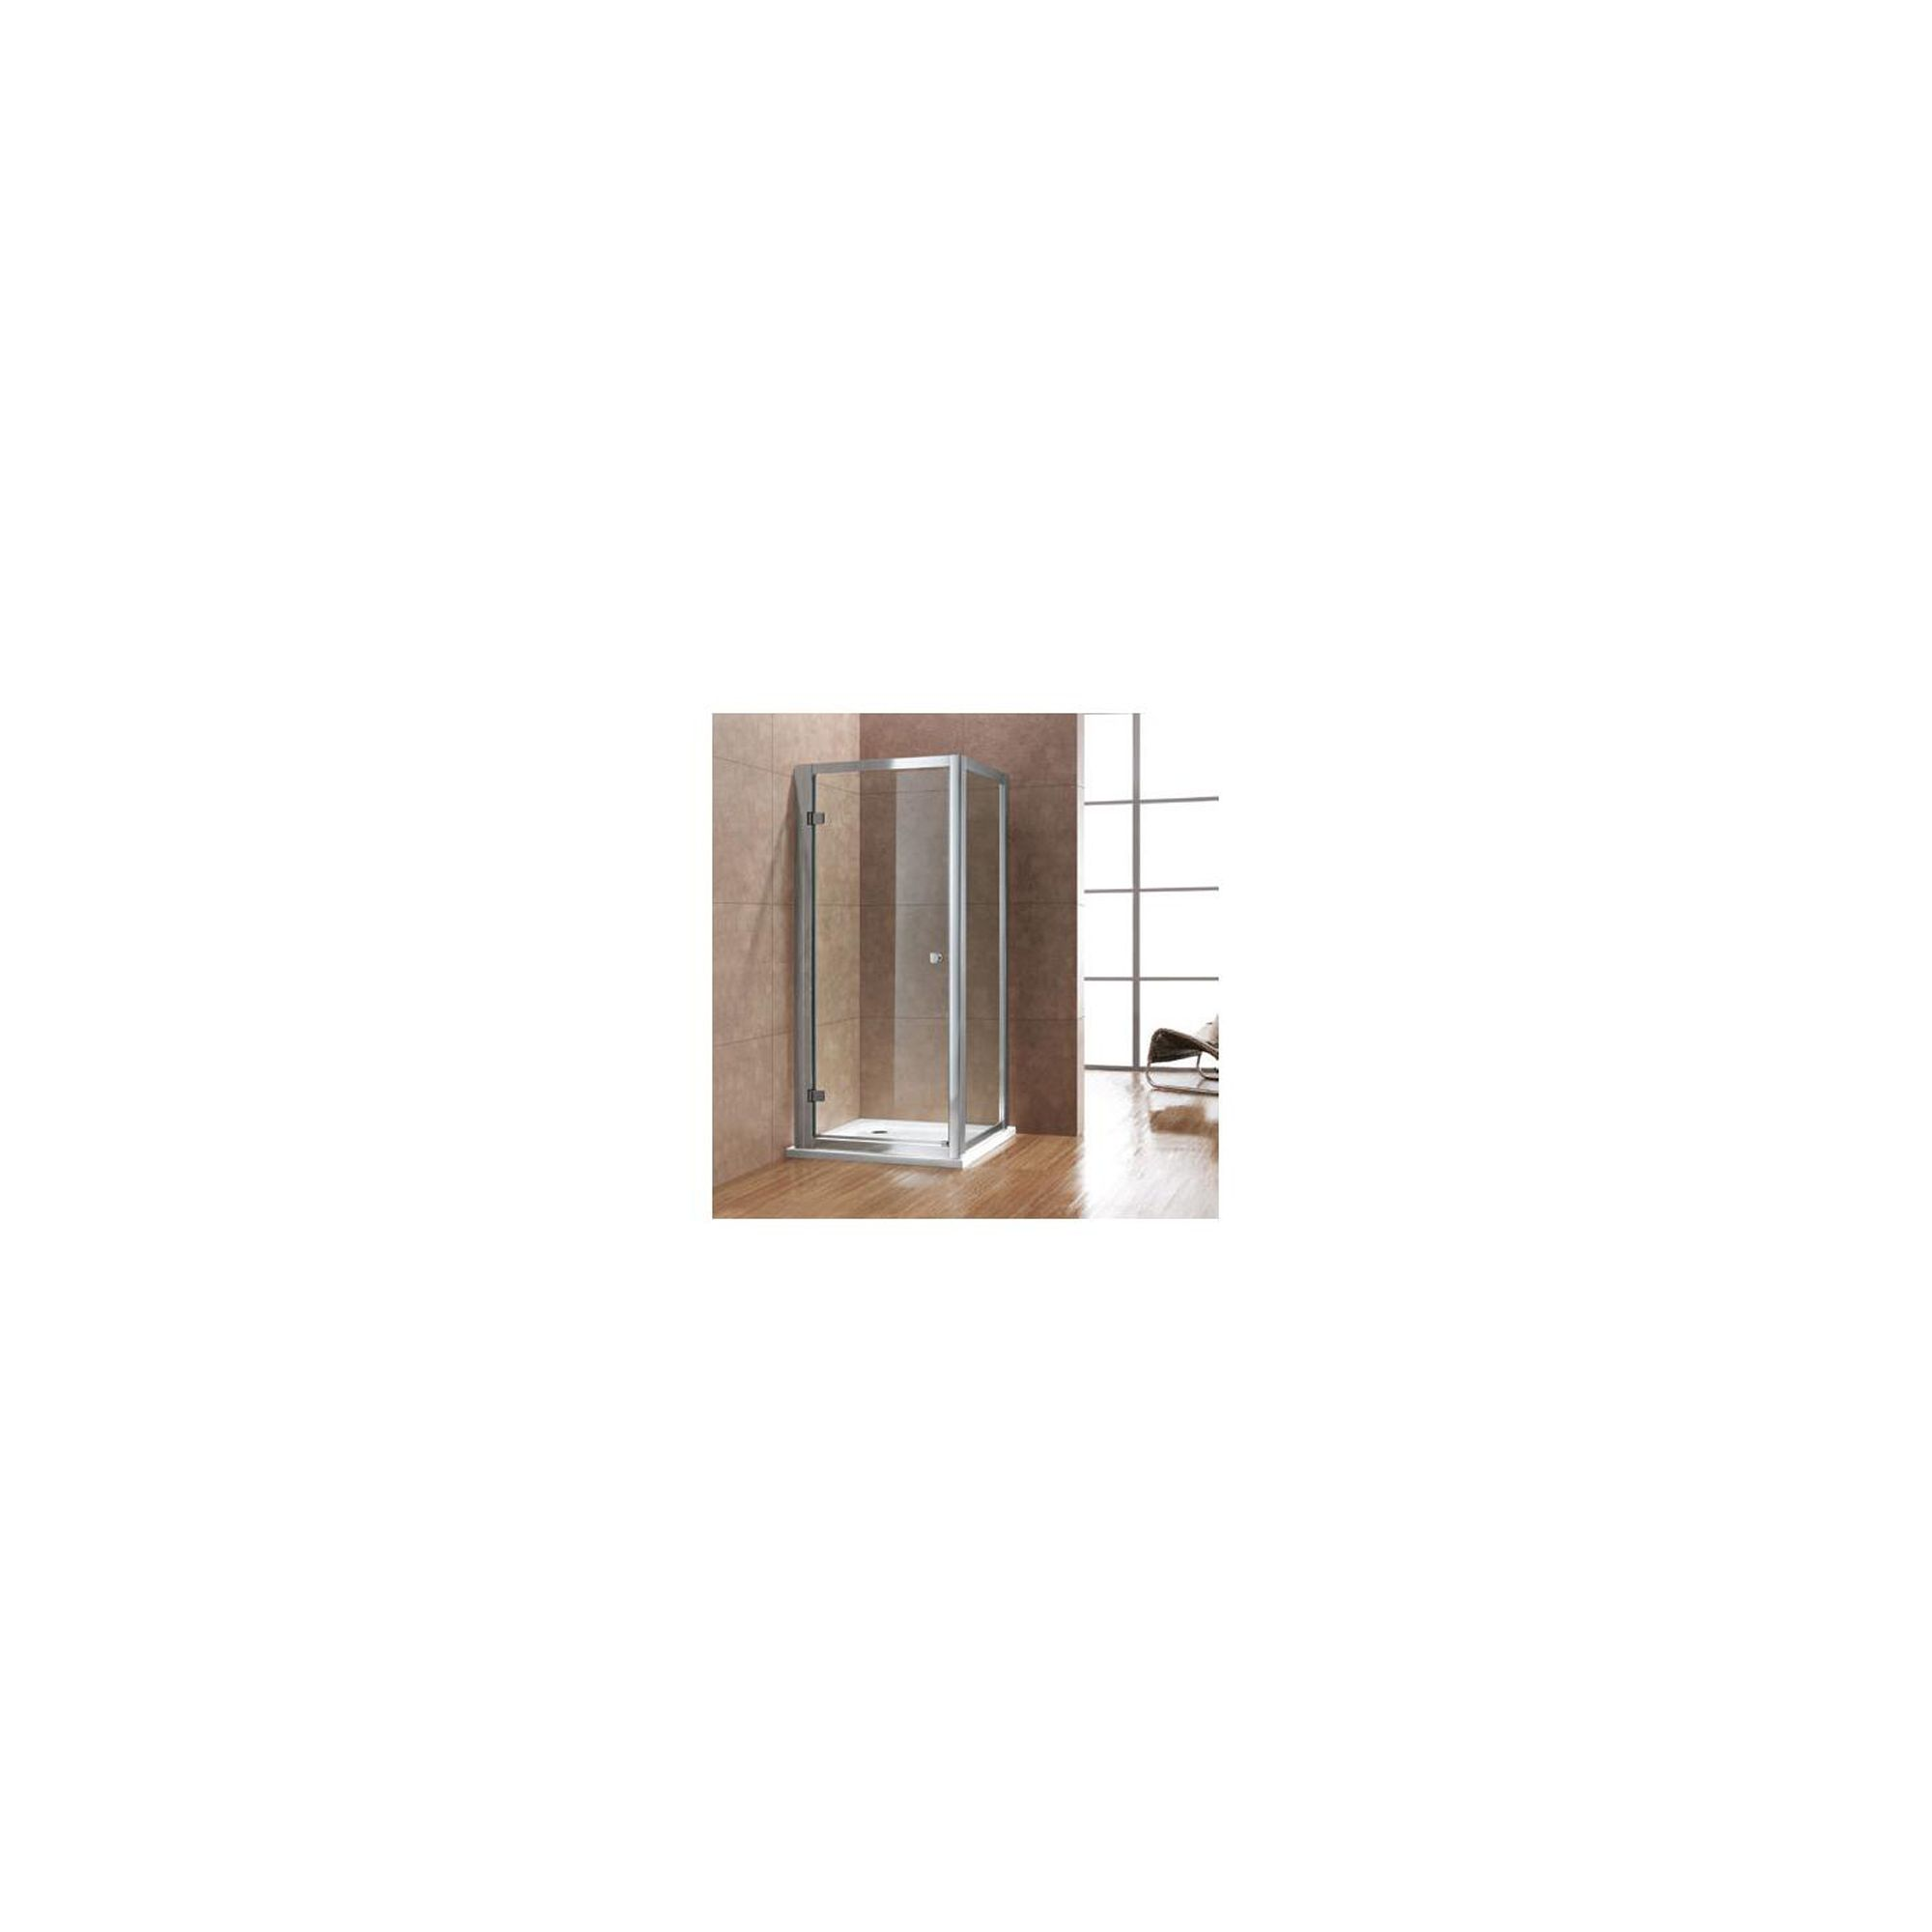 Duchy Premium Hinged Shower Door, 760mm Wide, 8mm Glass at Tesco Direct